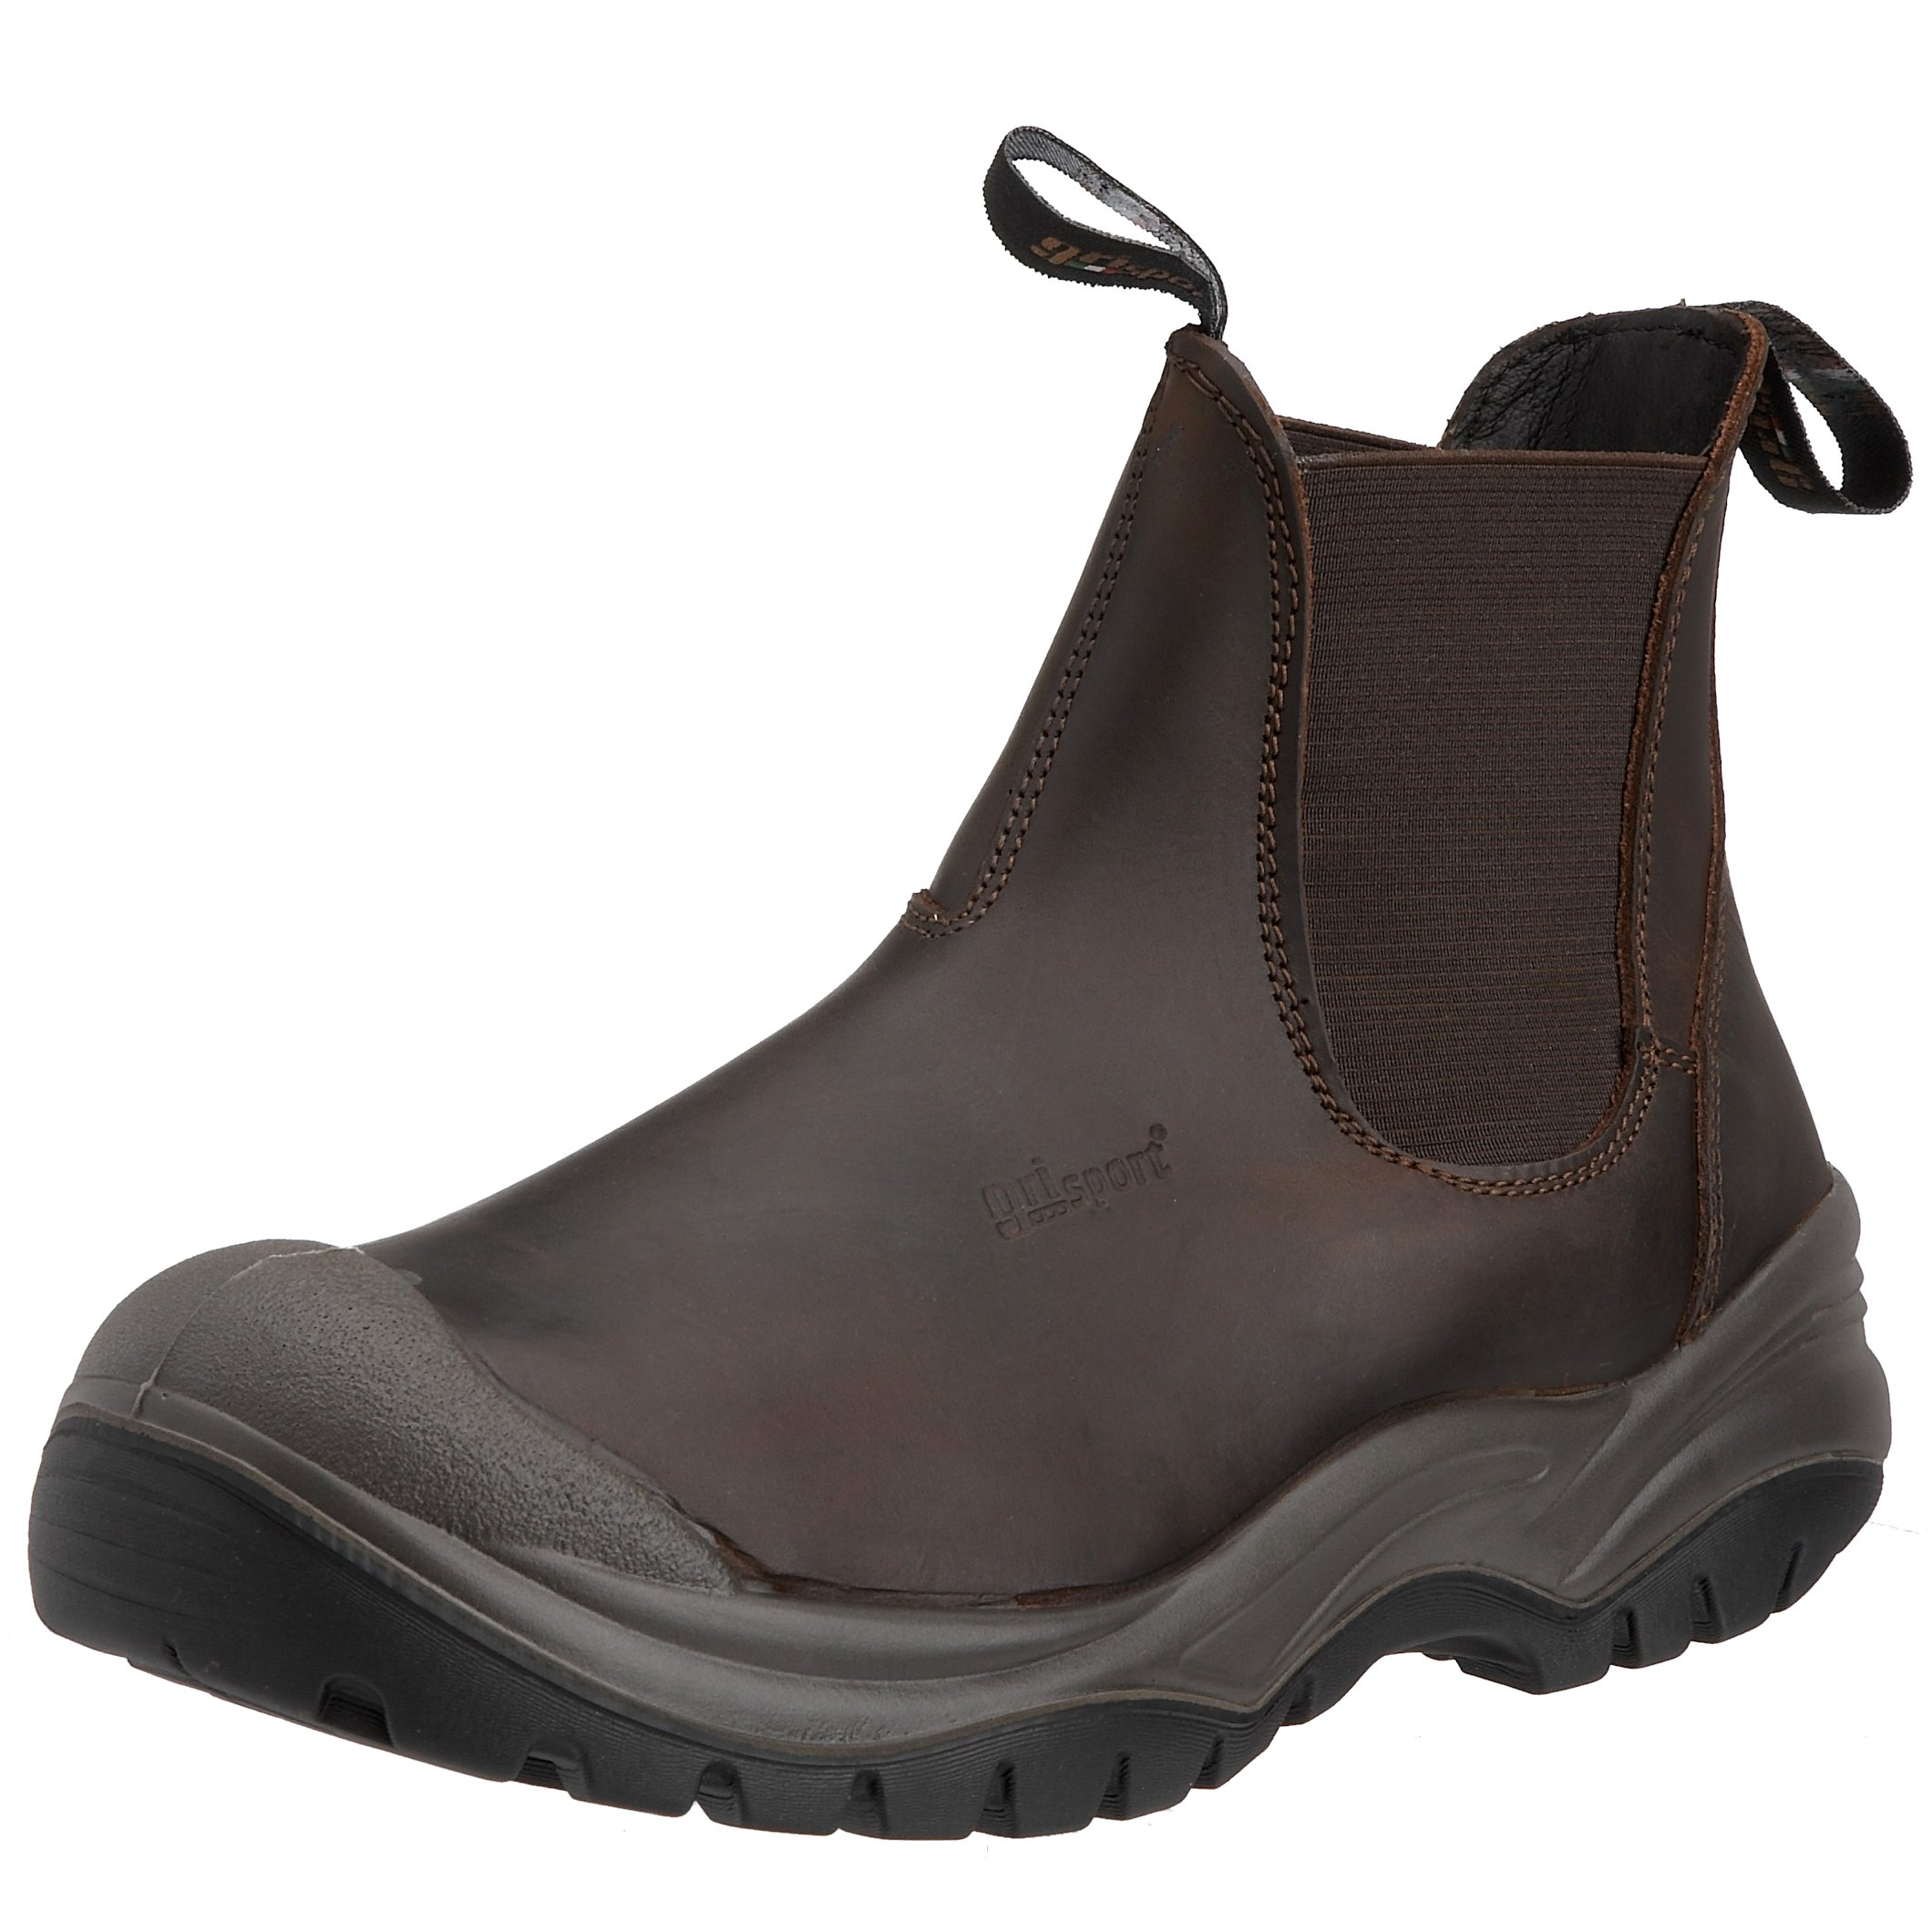 Boots 6 Brown Grisport Chukka Safety Men's Uk S3 E9DWH2YI